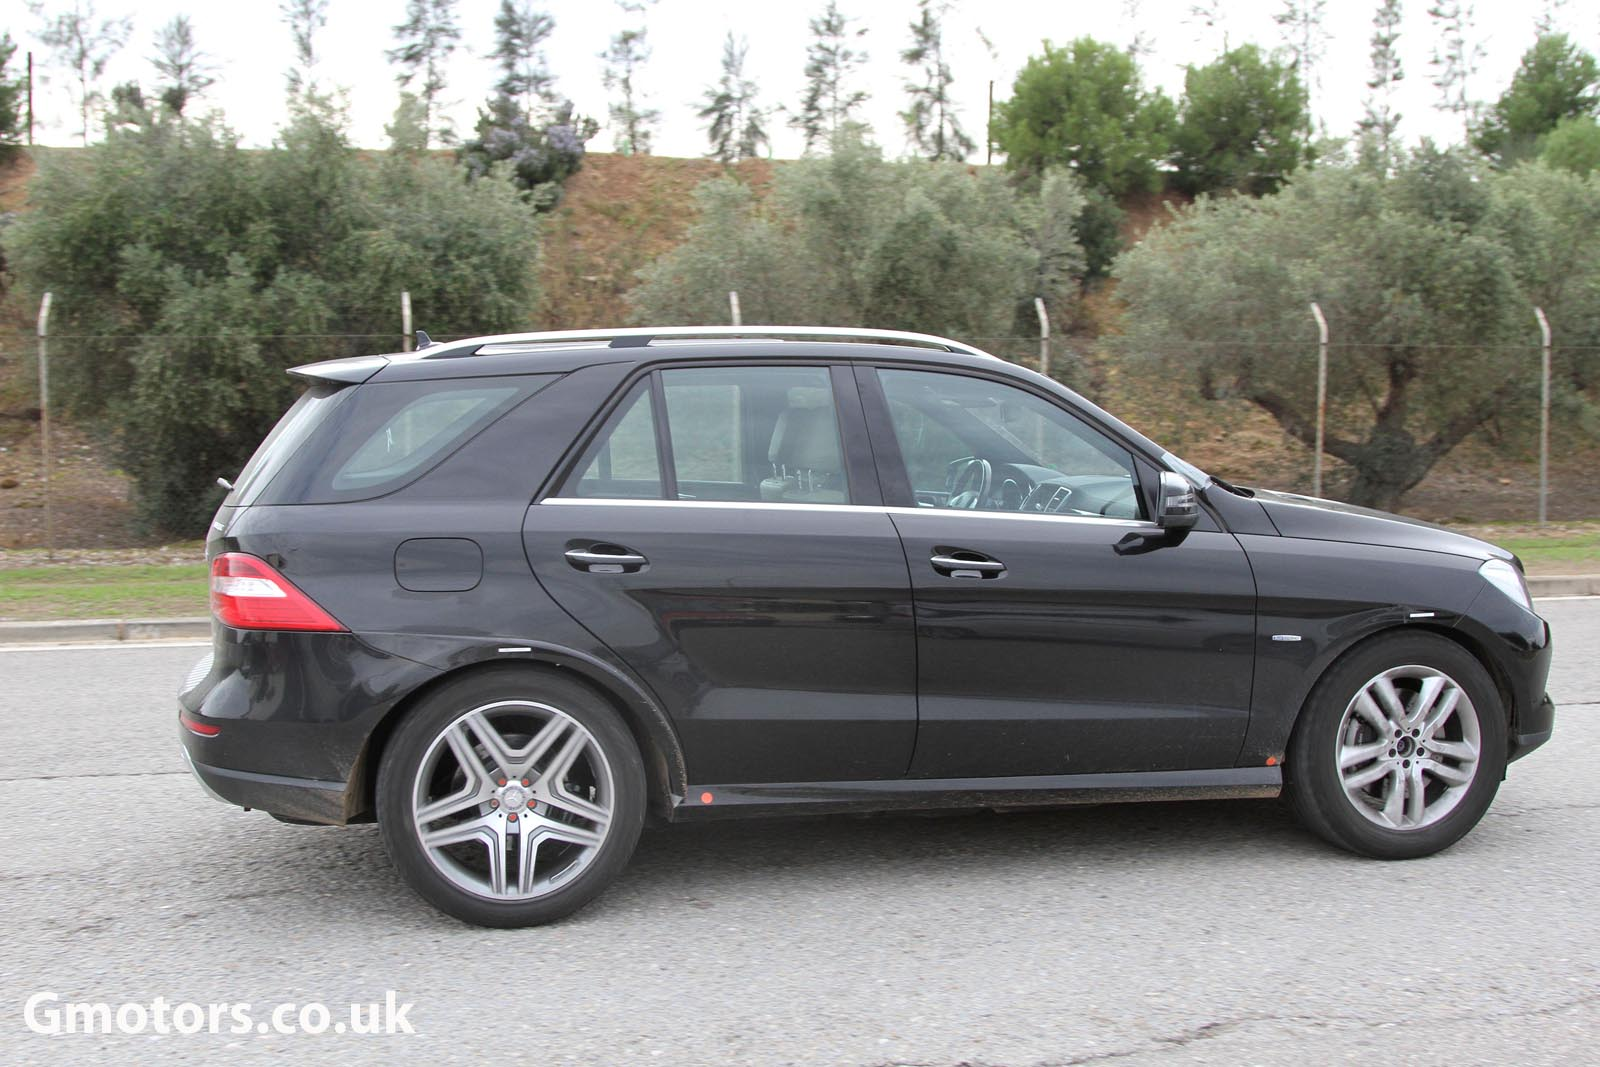 2015 - [Mercedes] GLE Coupé [C292] - Page 2 Mercedes-Benz-MLC-Chassis-Testing-Mule-10